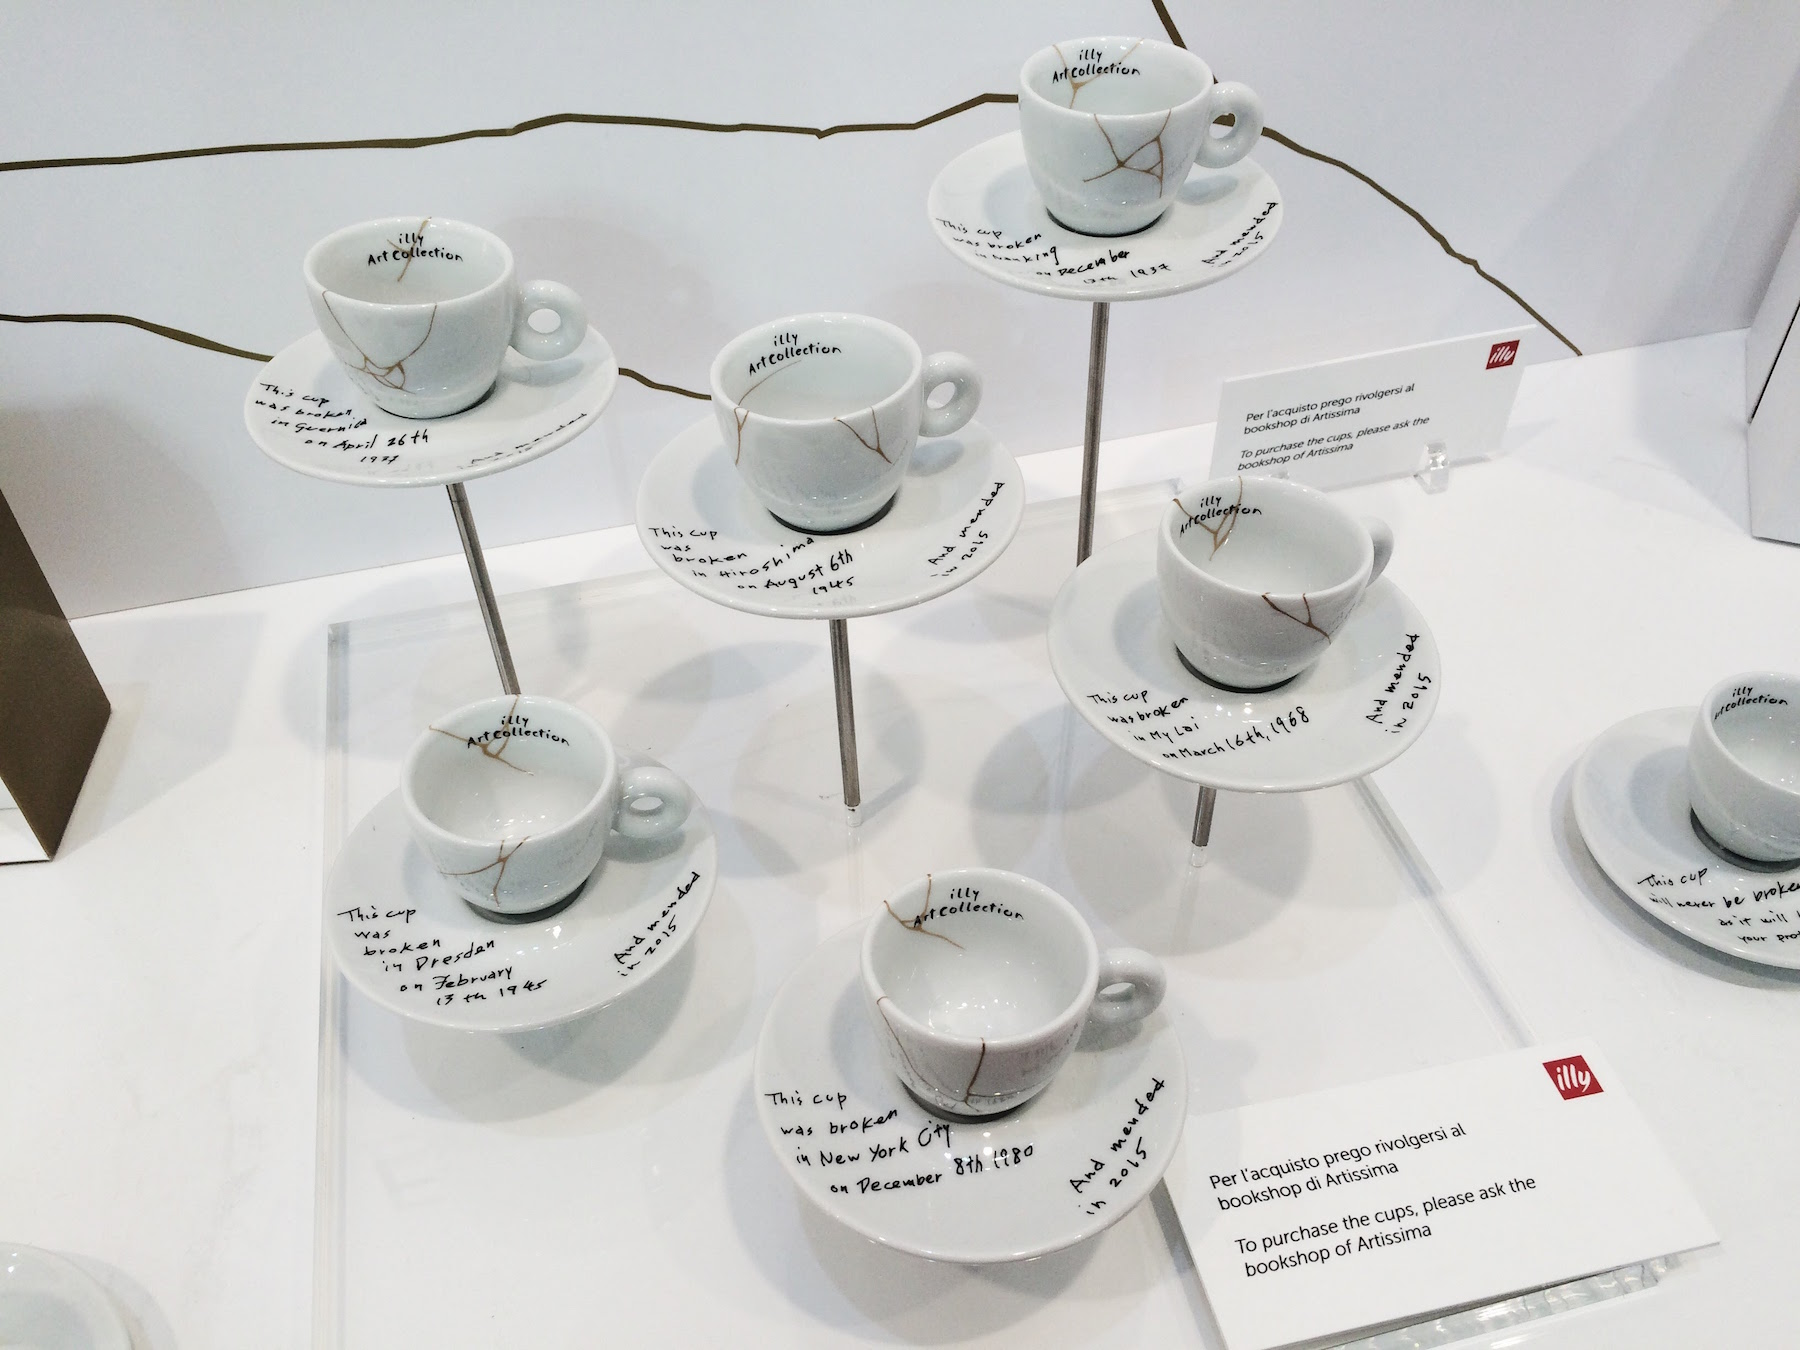 Illy Mended Cups by Yoko Ono